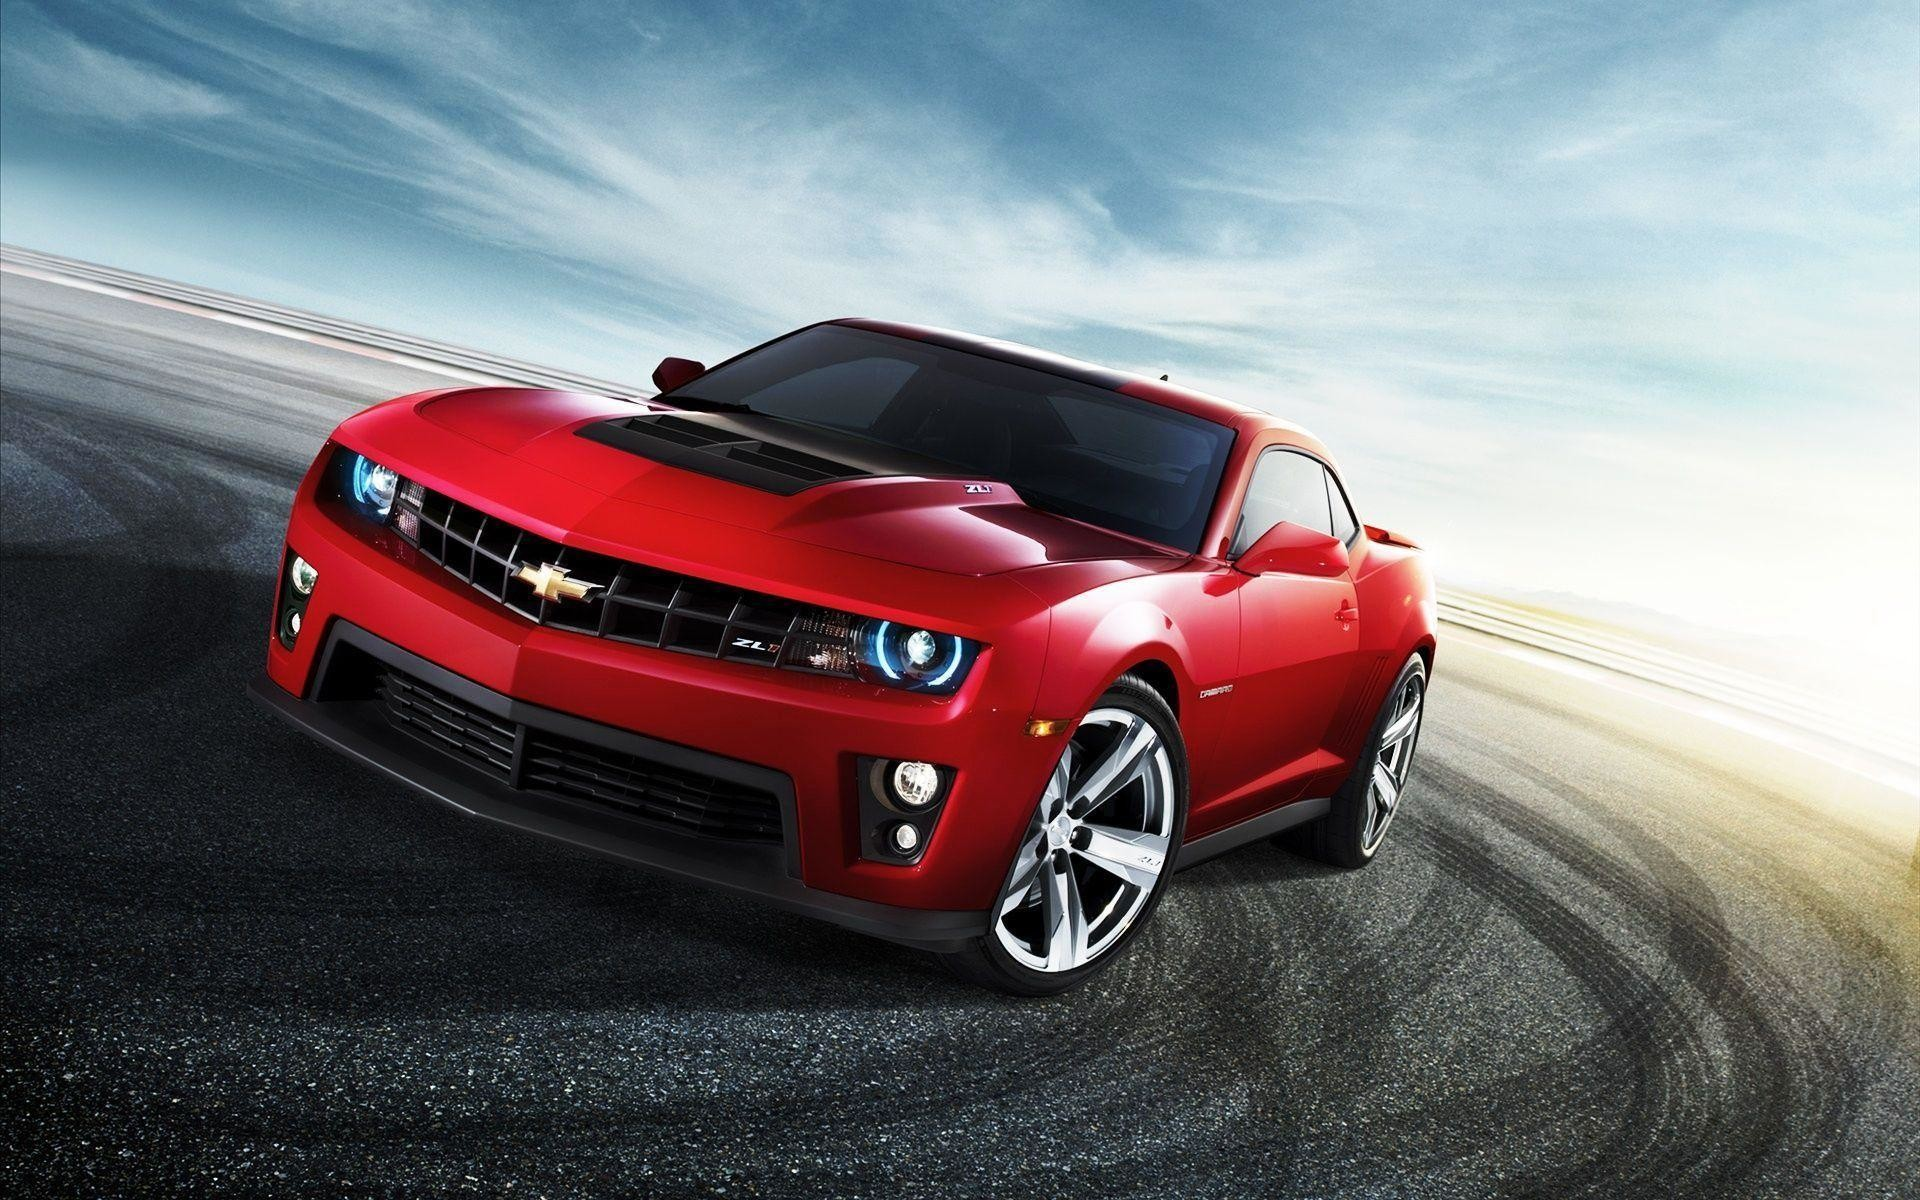 1920x1200 Red Car Camaro ZL Wallpaper Wide #8595 Wallpaper | High Resolution .